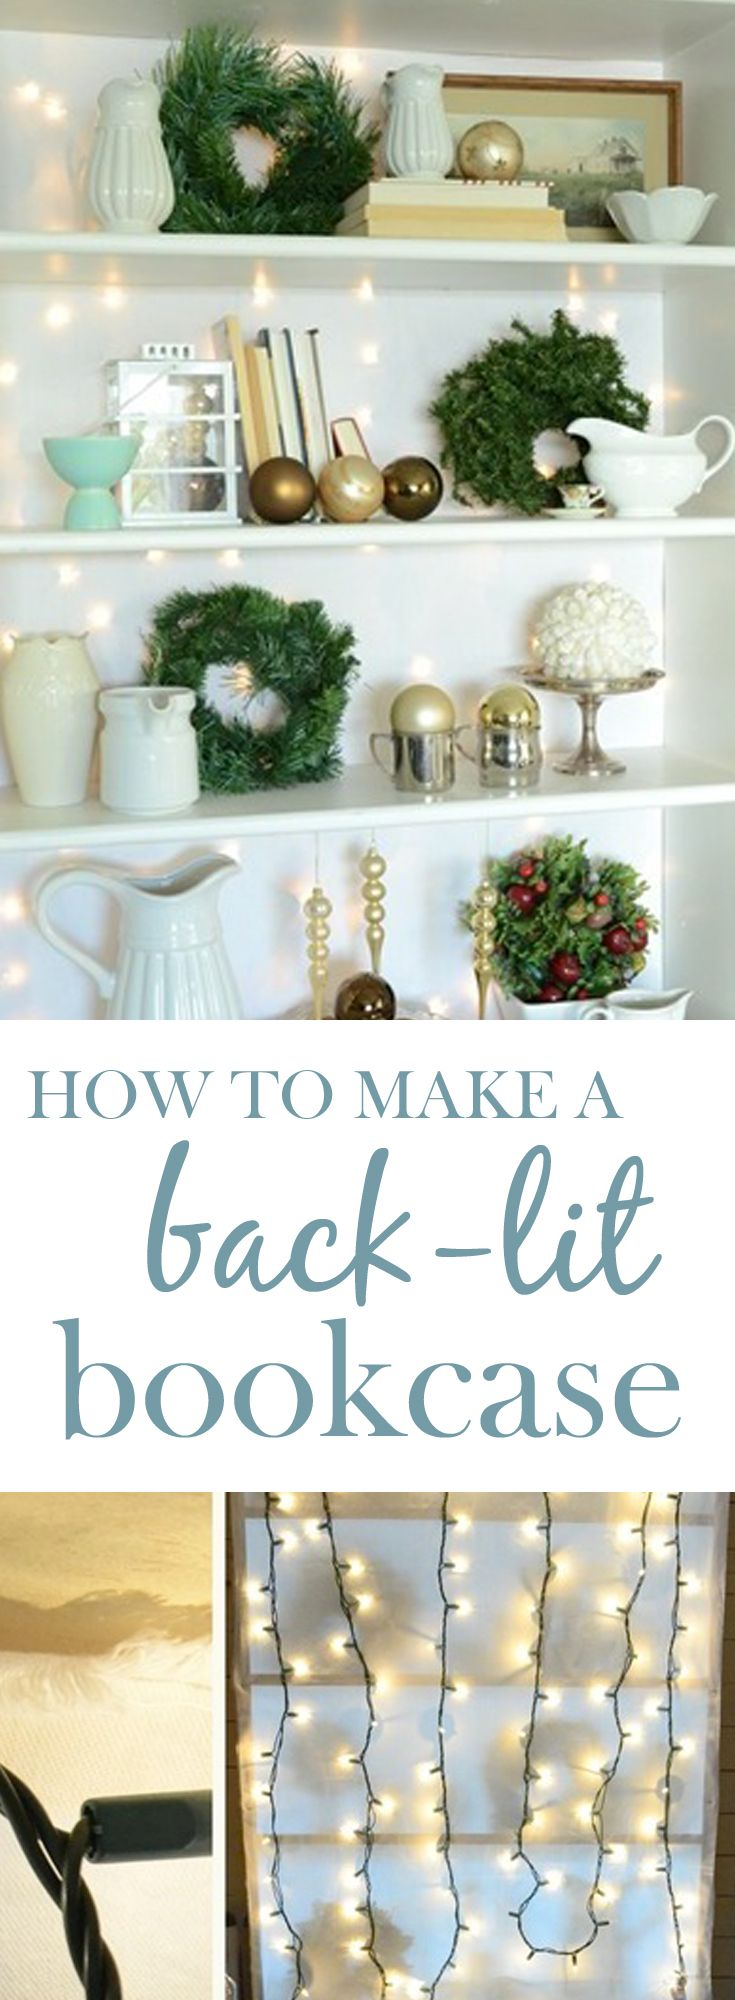 How to Make a Back Lit Bookcase | Christmas decor | Styling a Christmas bookcase